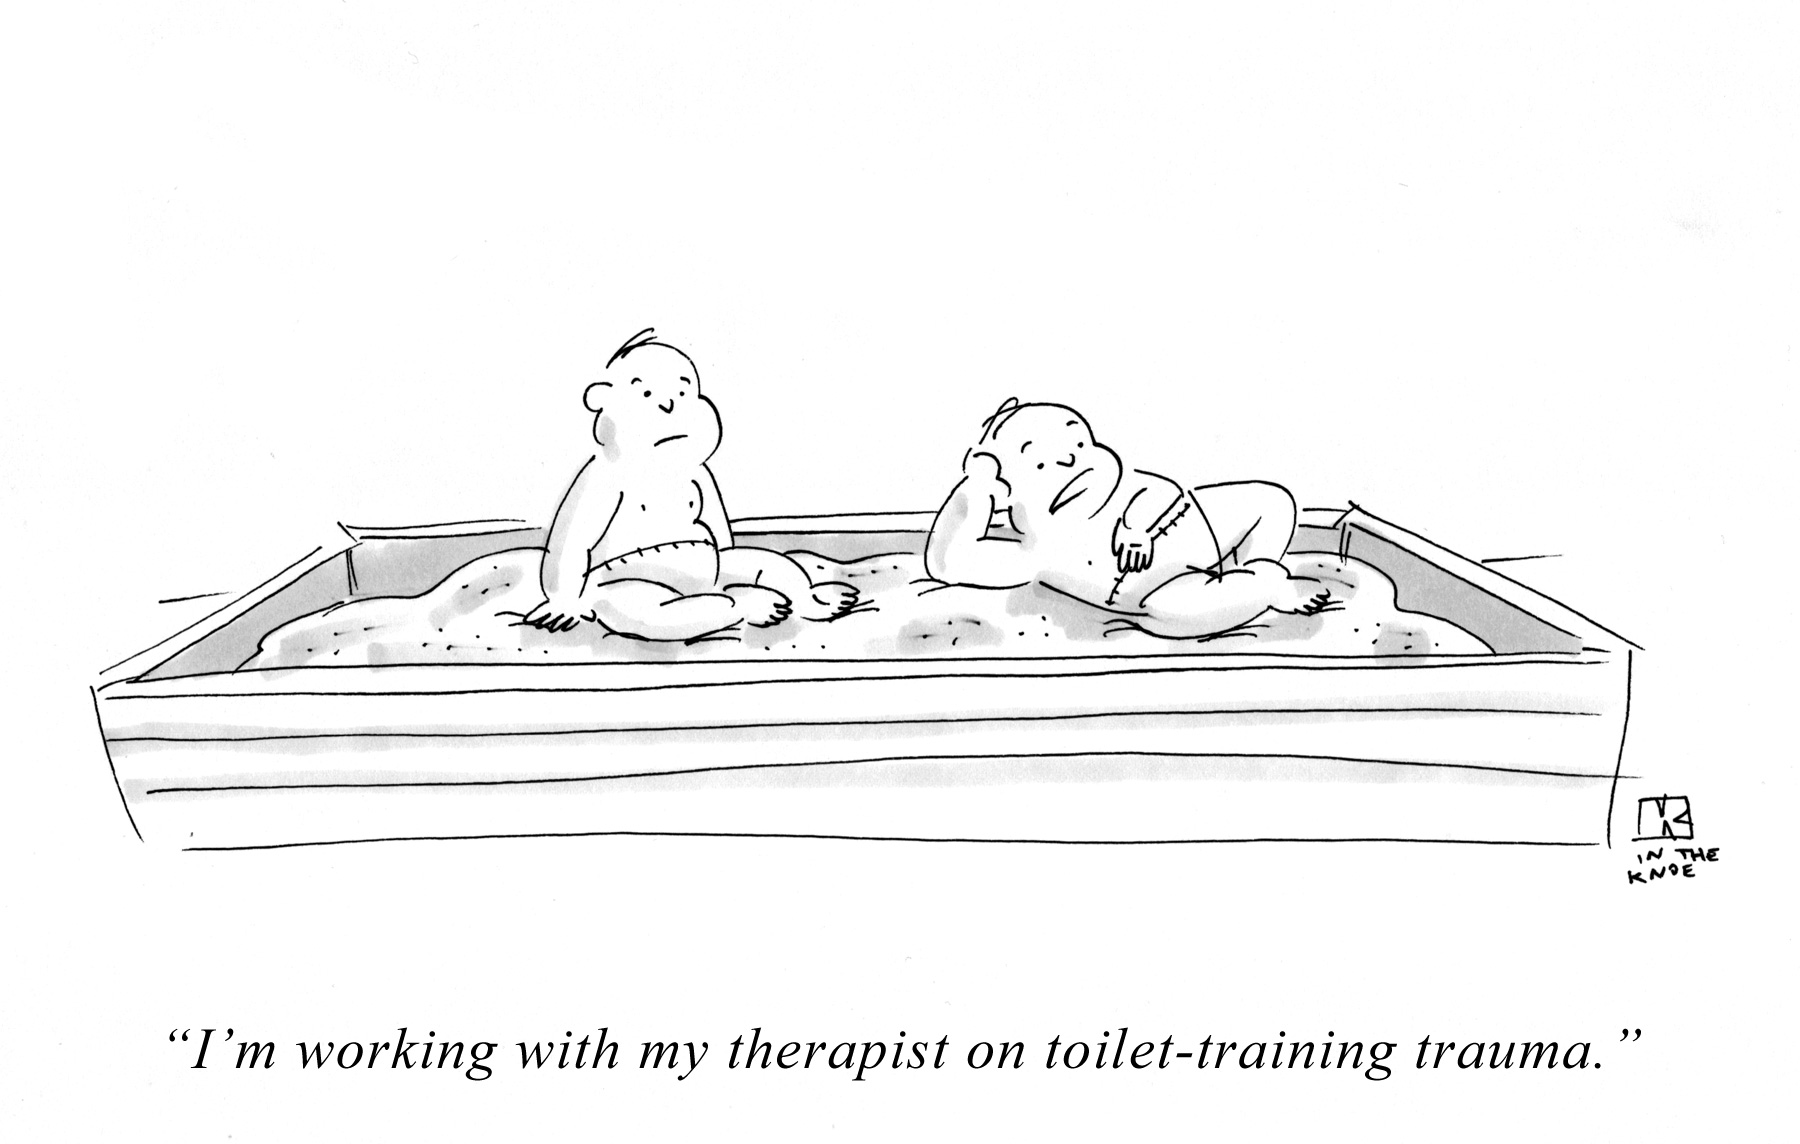 I'm working with my therapist on toilet-training trauma.